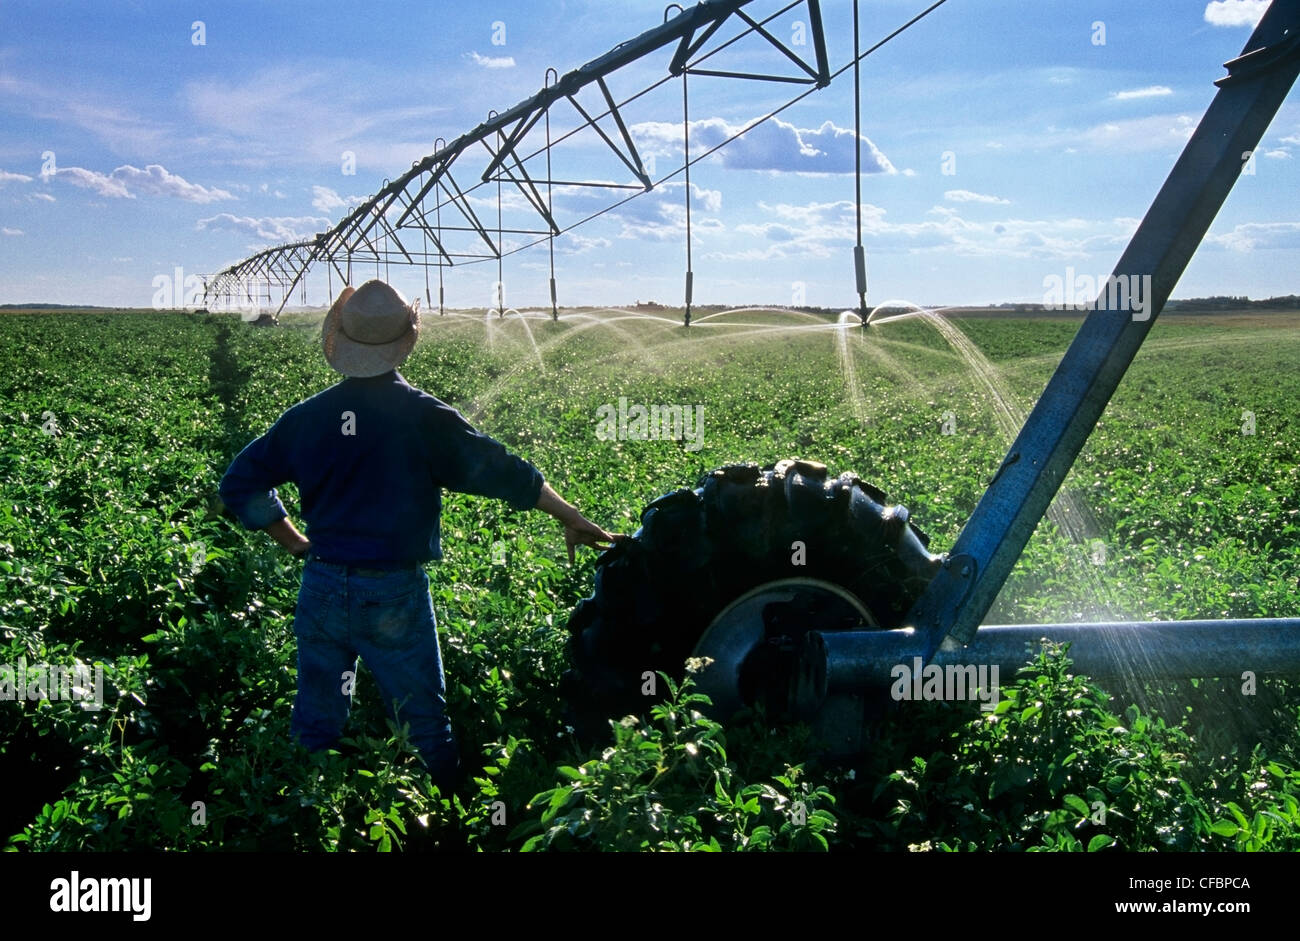 A farmer overlooking center pivot irrigation system irrigating potato field near Holland, Manitoba, Canada - Stock Image